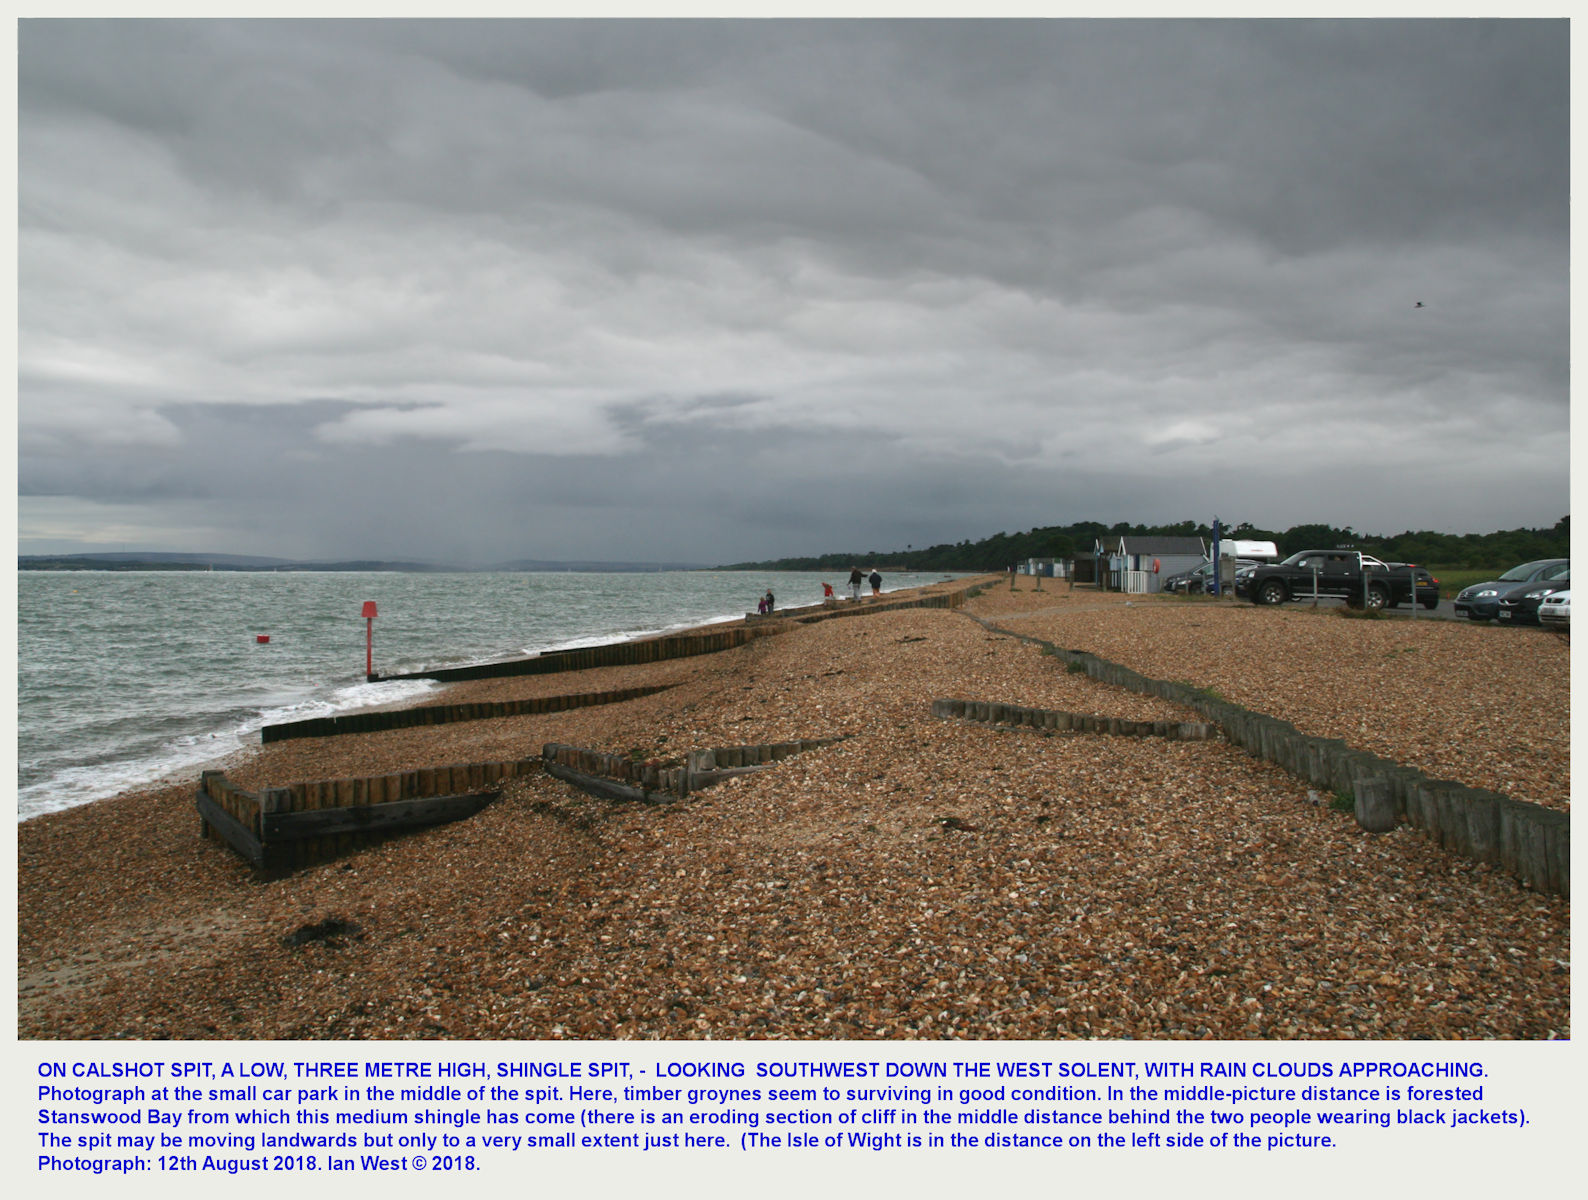 At the small car park in the middle part of the 3-metre high, Calshot Spit, with storm clouds approaching in the West Solent, 12th August 2018